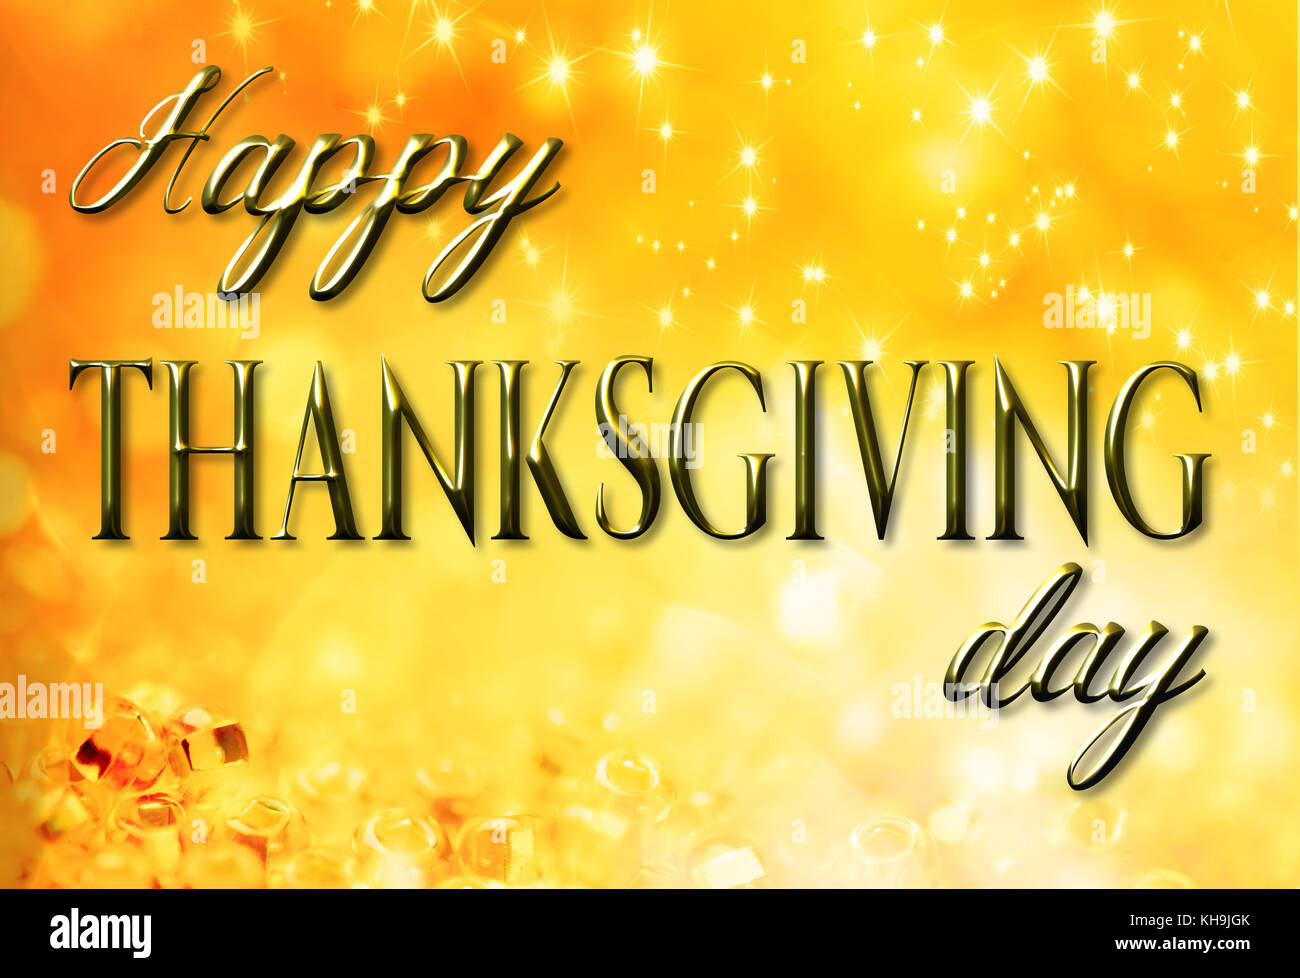 Abstract holiday gold background with thanksgiving greetings - Stock Image